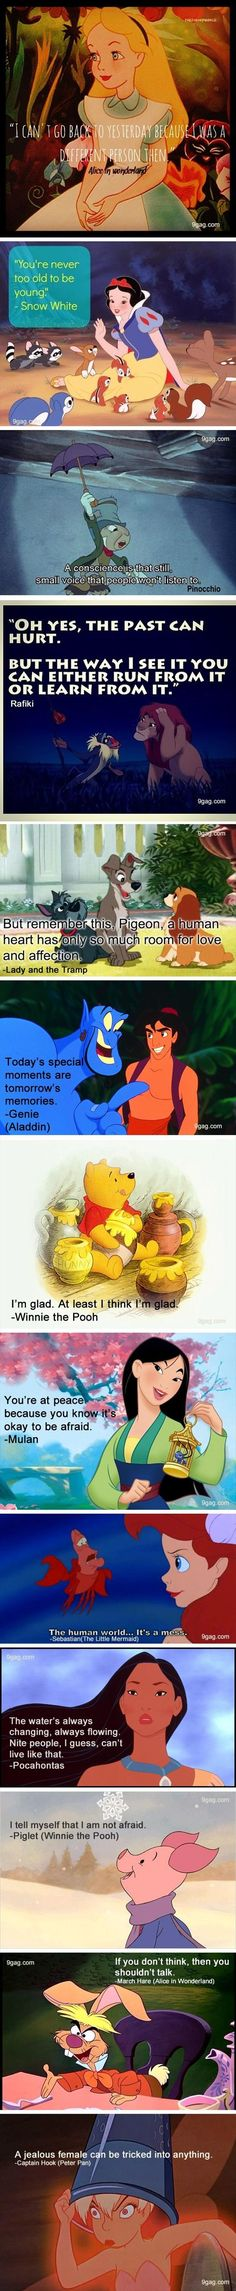 Some awesome Disney character quotes...